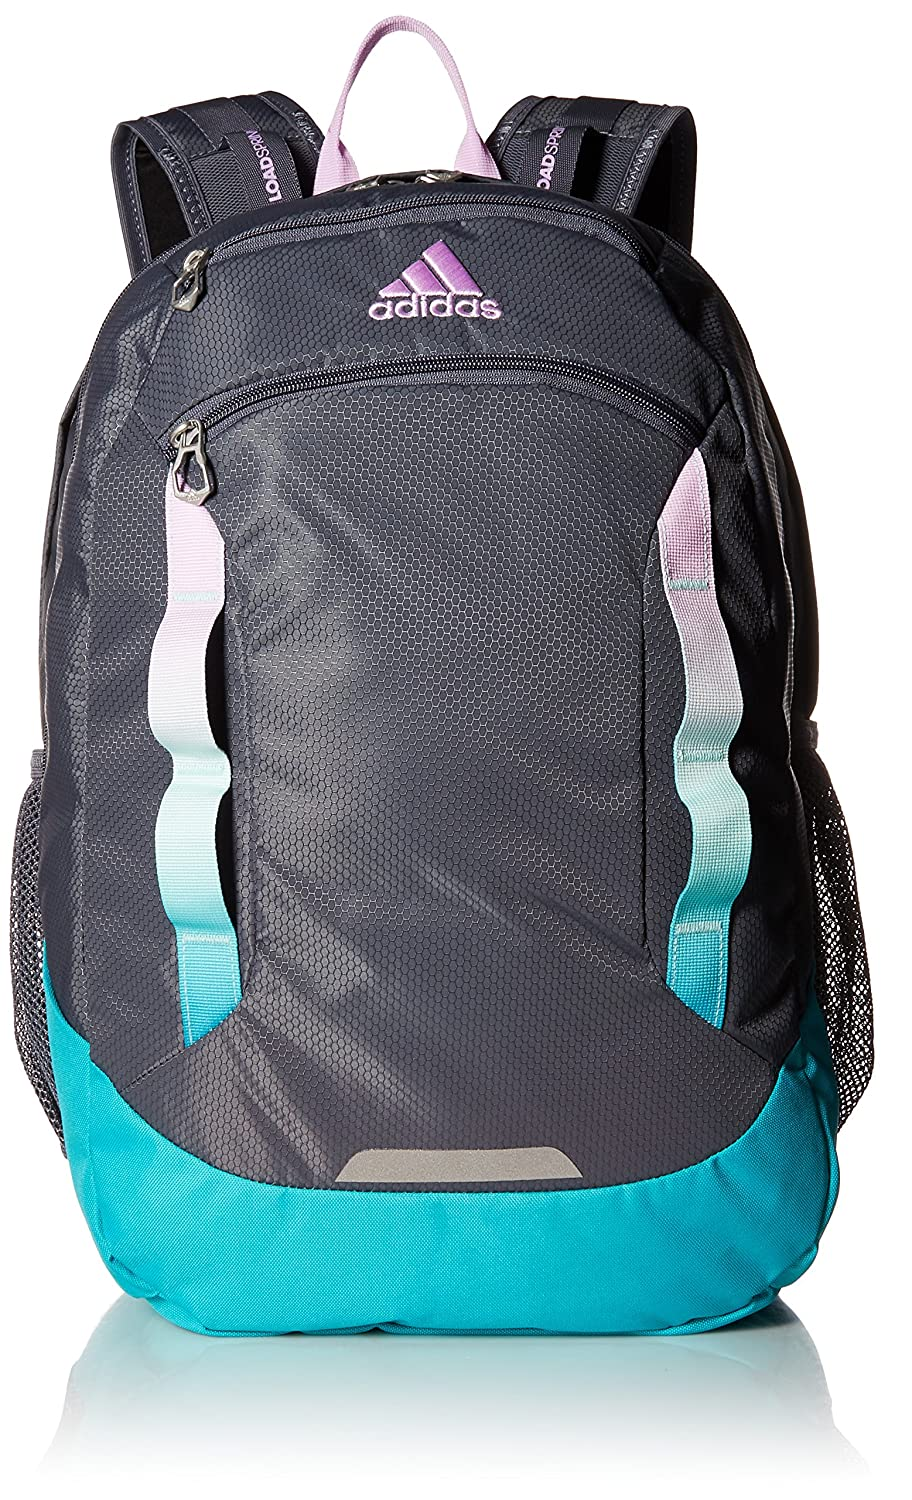 adidas Excel adidas Excel Backpack Agron Inc (adidas Bags) 104638